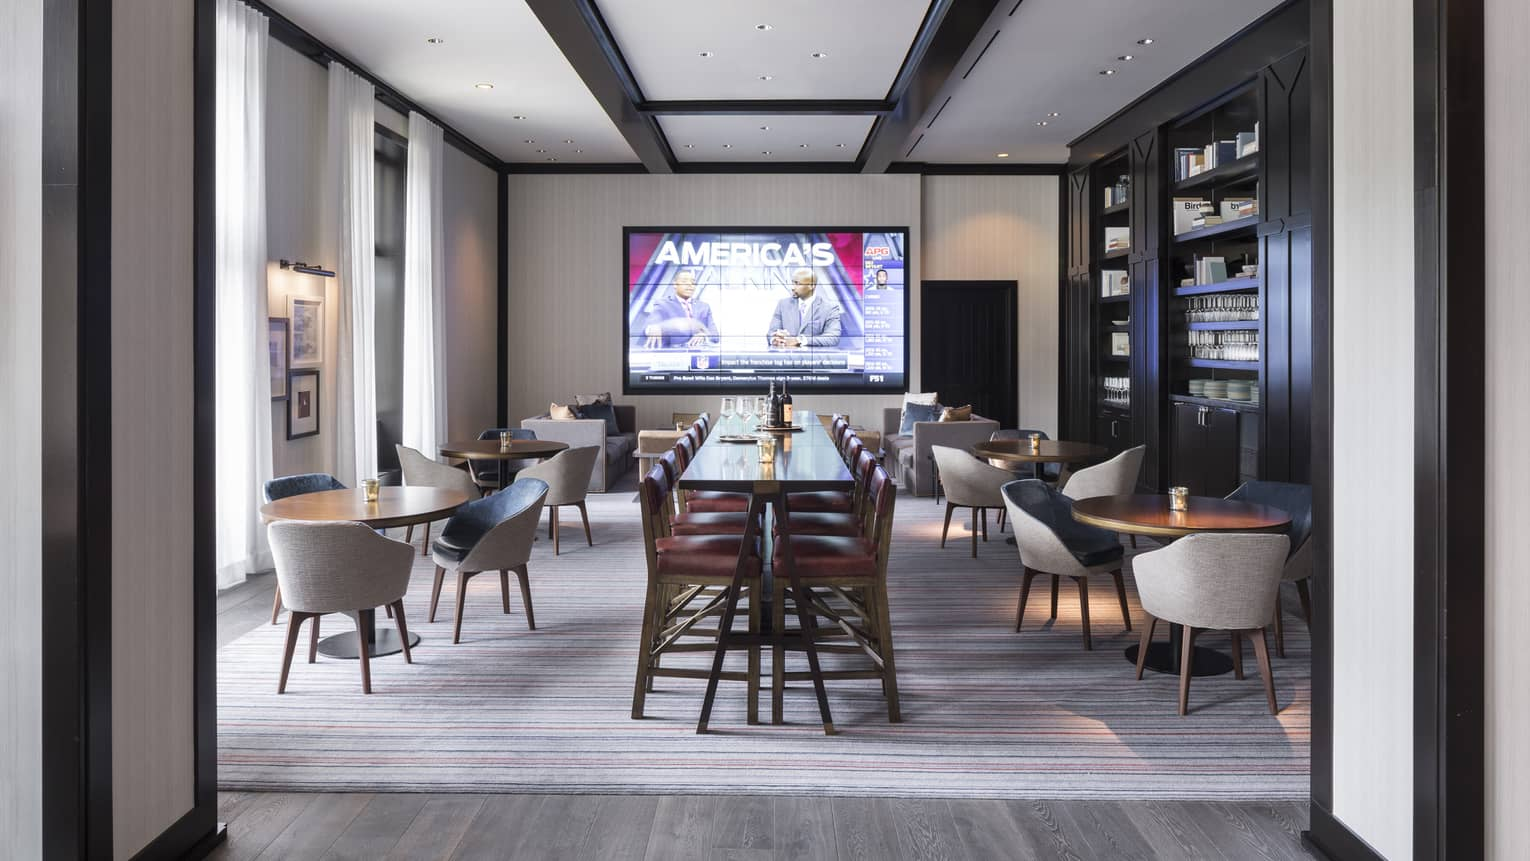 Enjoy Sporting Events On Our 165 Television One Of The Largest In Vail Valley